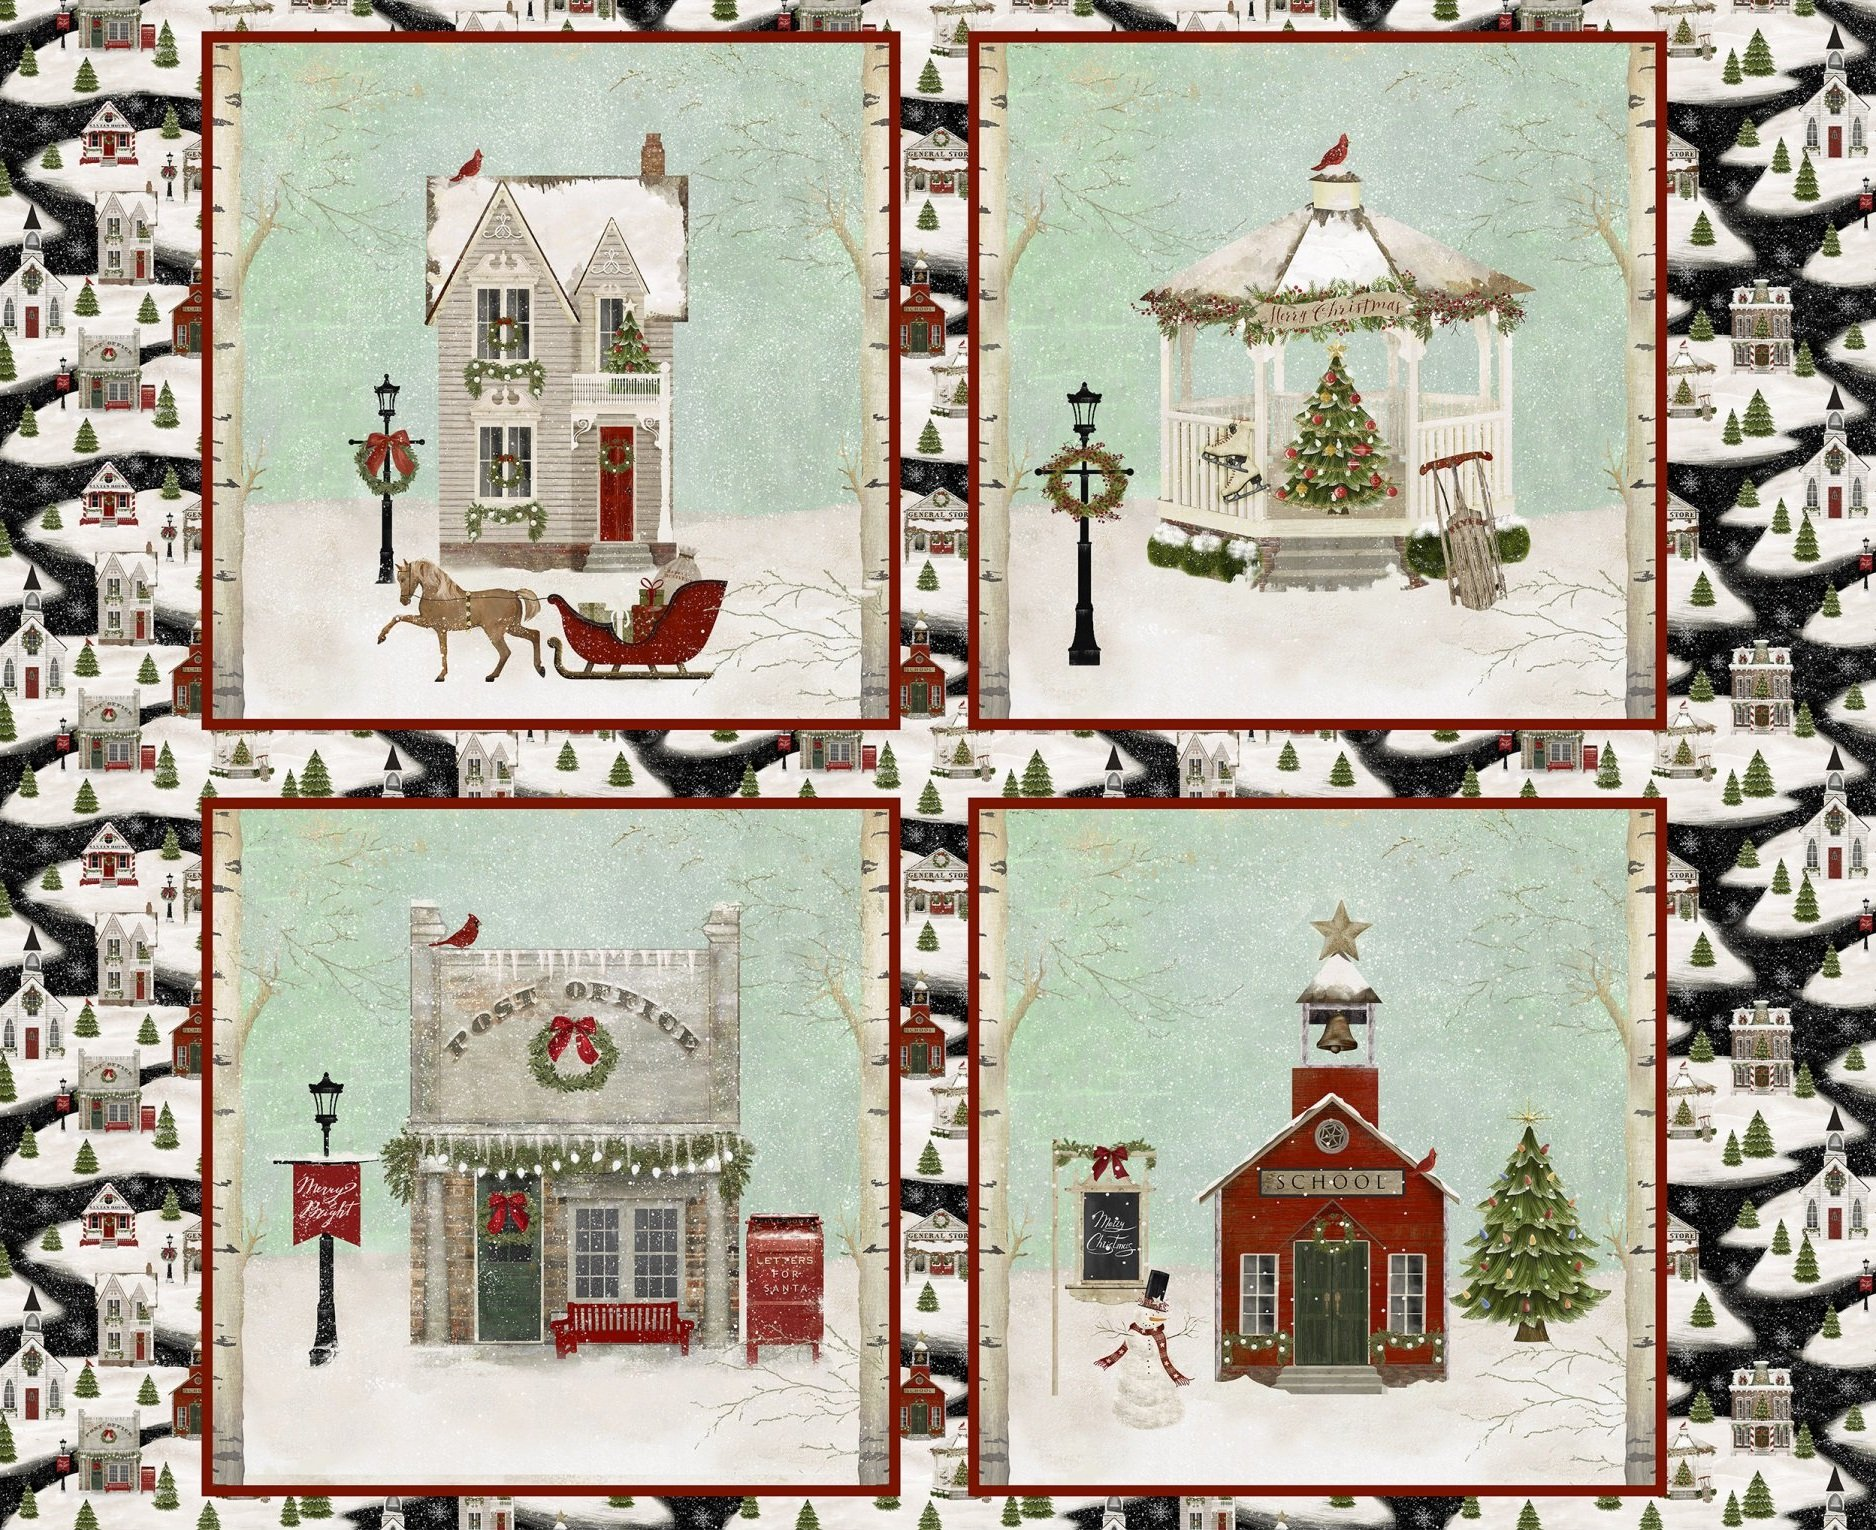 Home for the Holidays panel from 3 Wishes Fabric